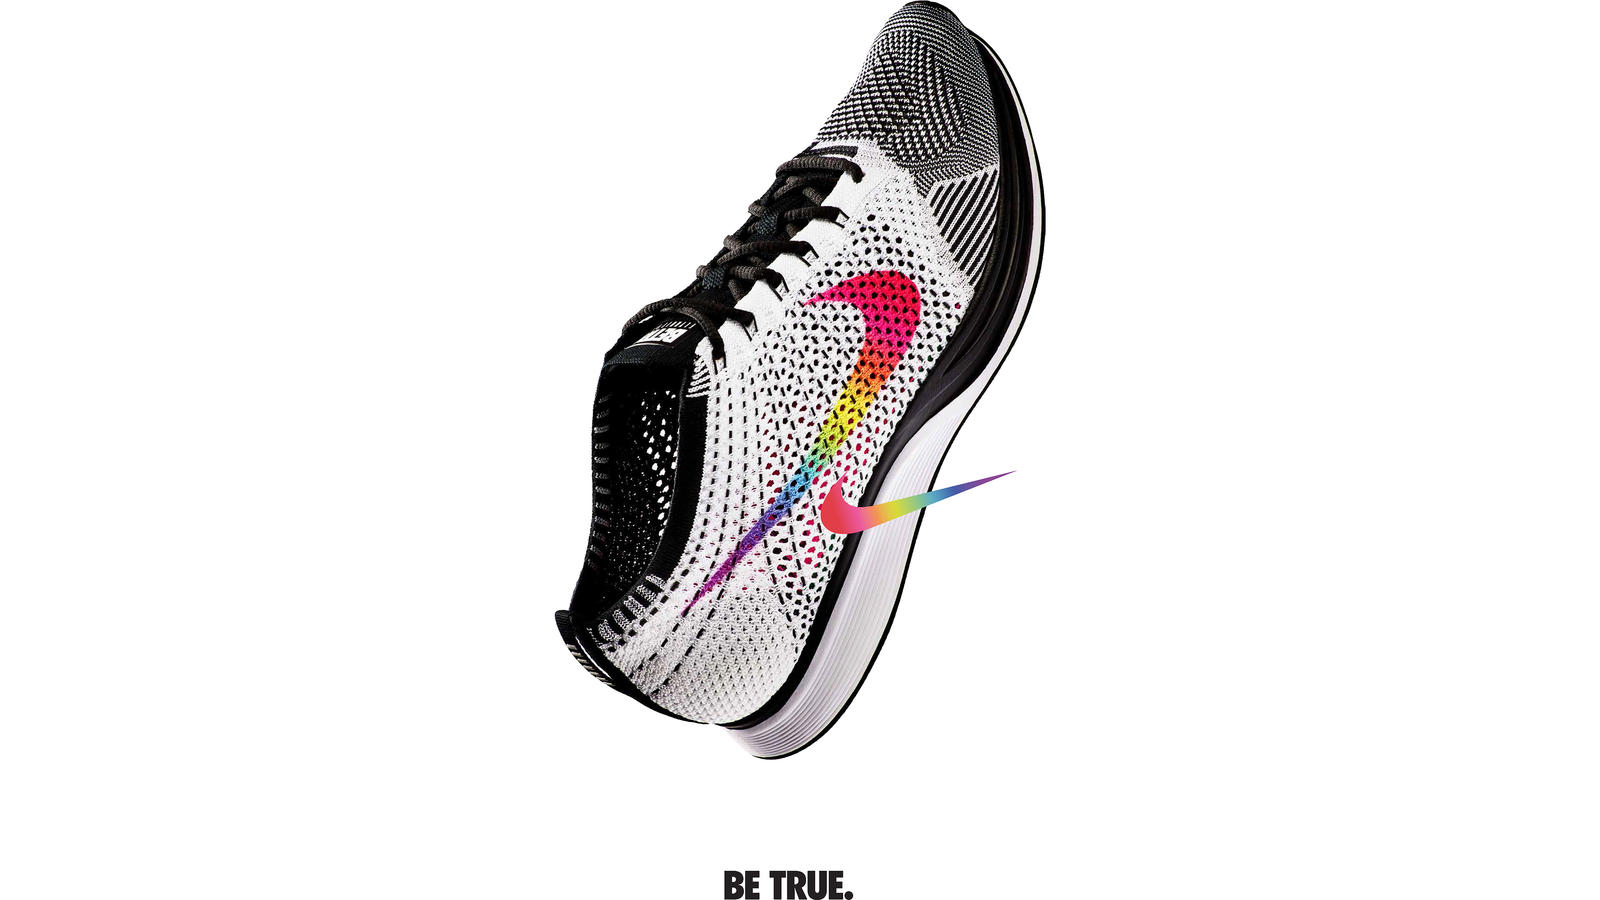 h1114_be_true_product_posters_420x594mm-3_hd_1600-1